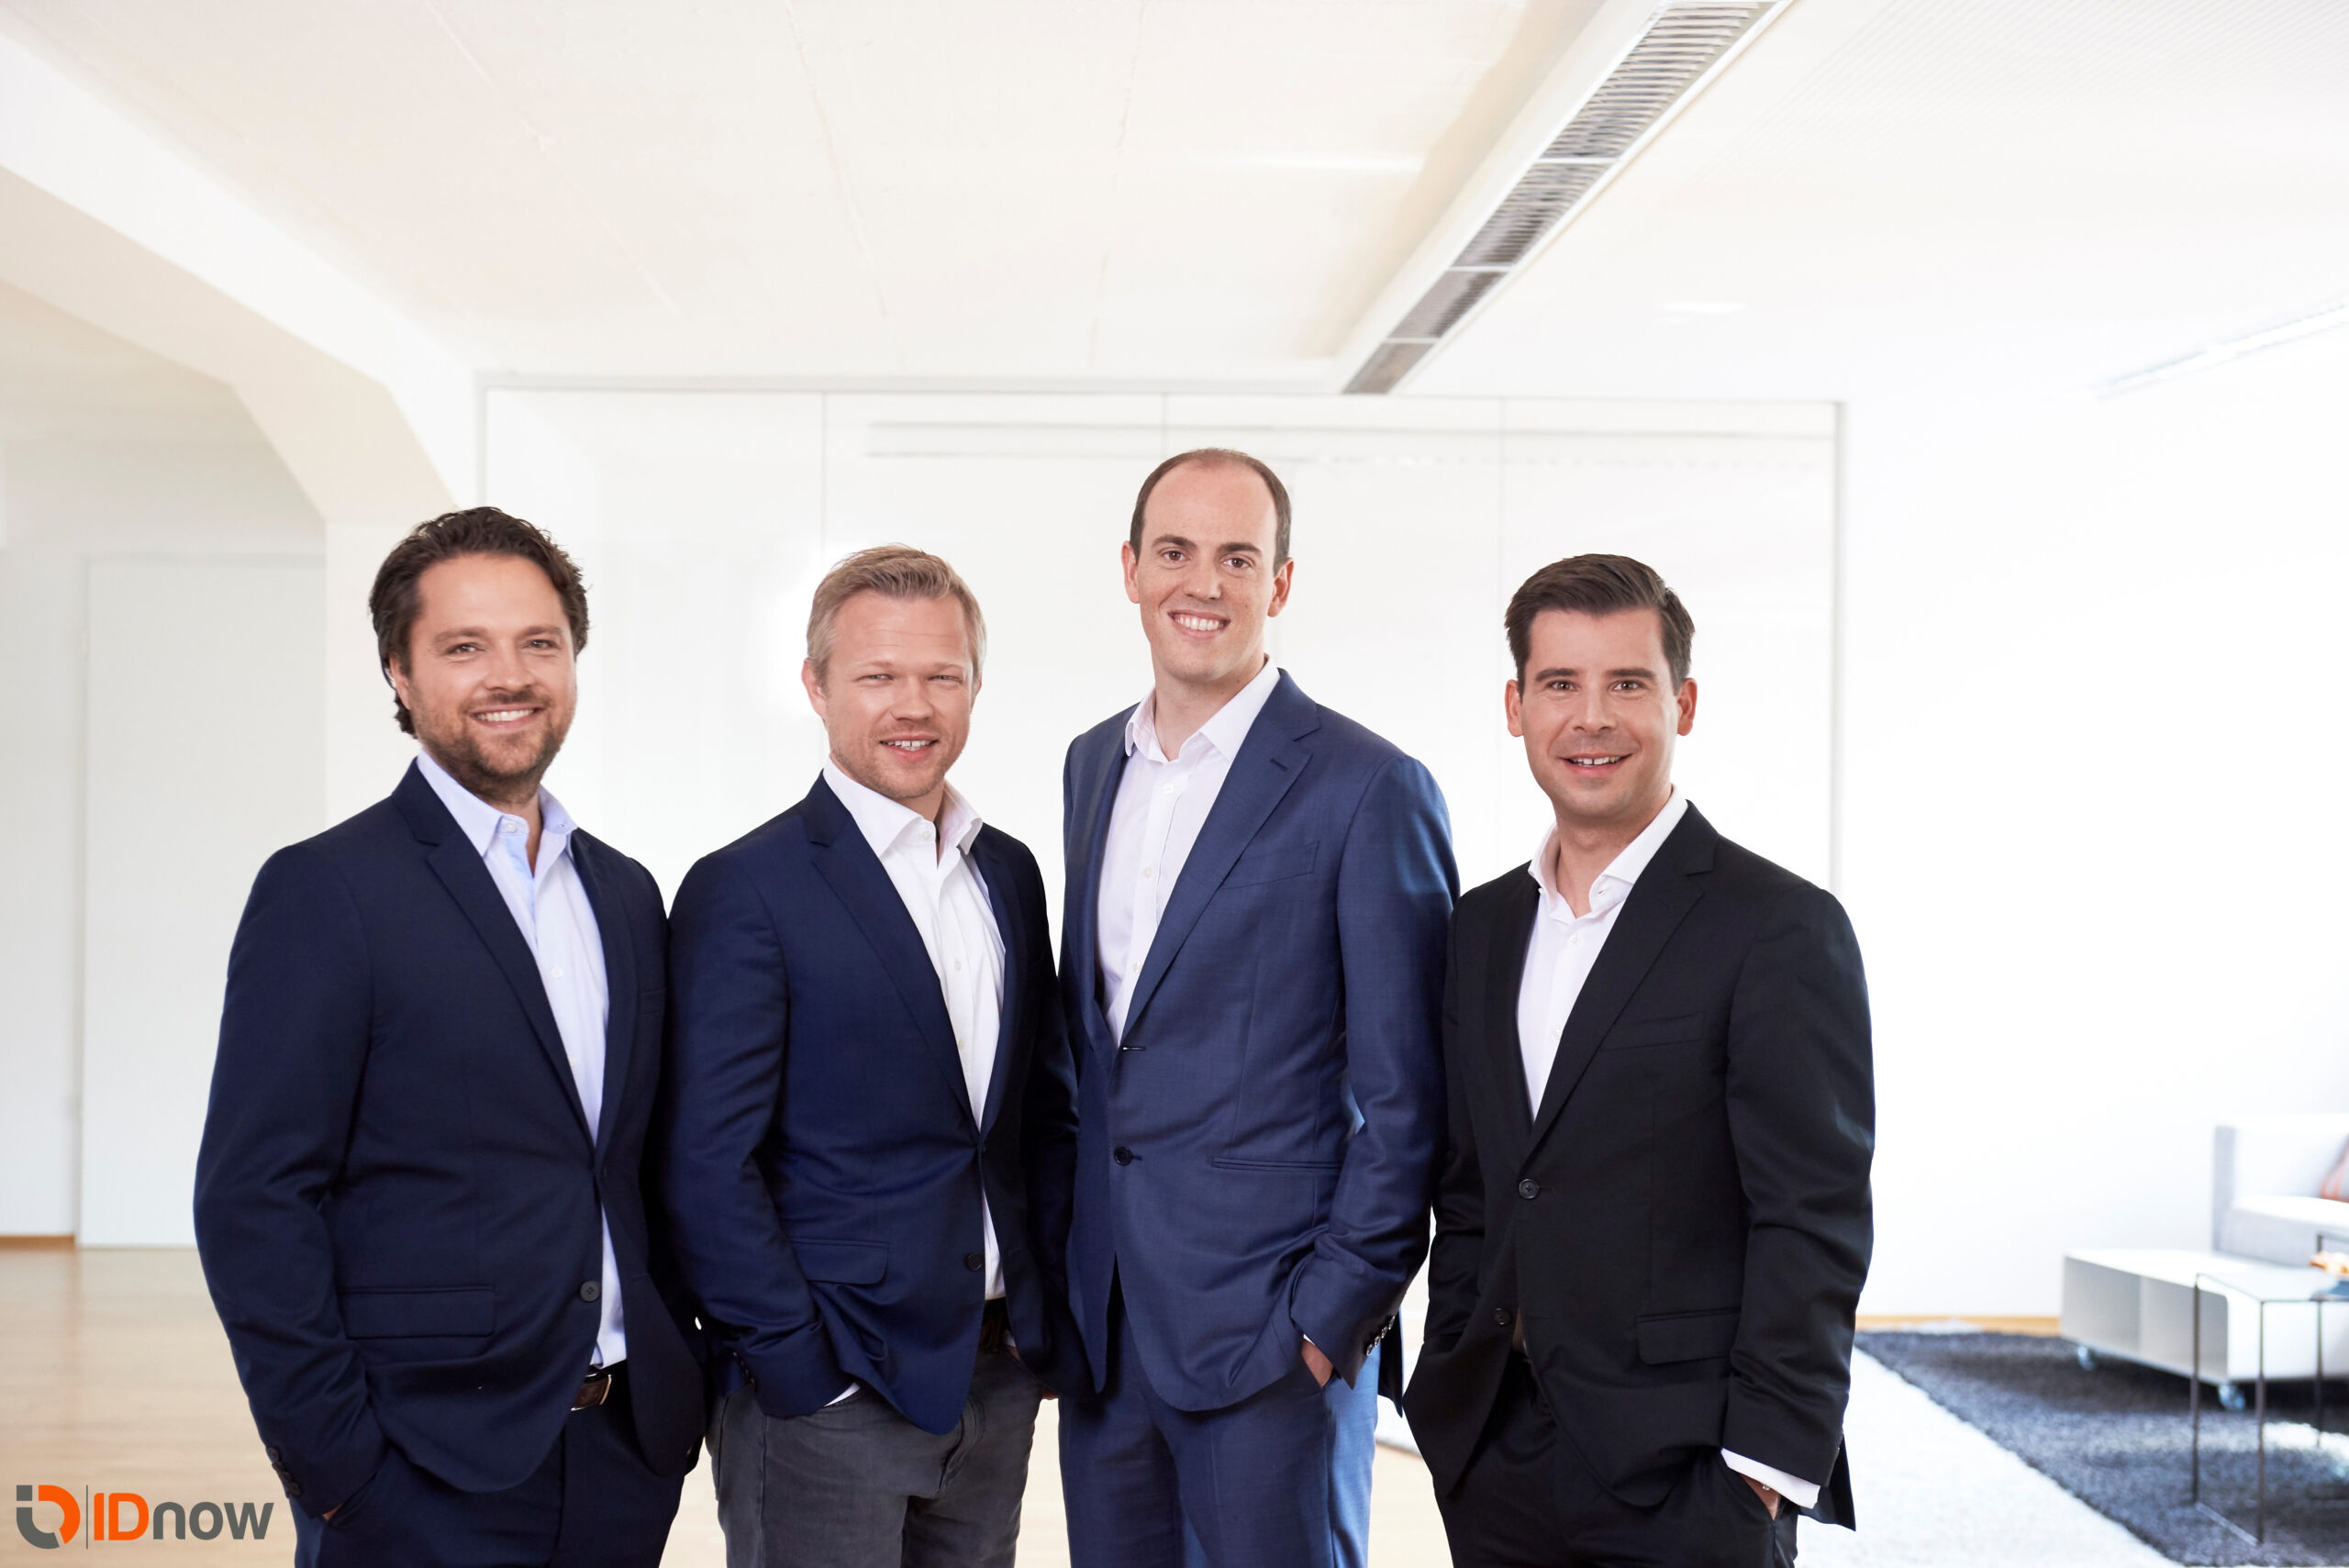 IDnow gets cheque book out again to snap up identity Trust Management AG